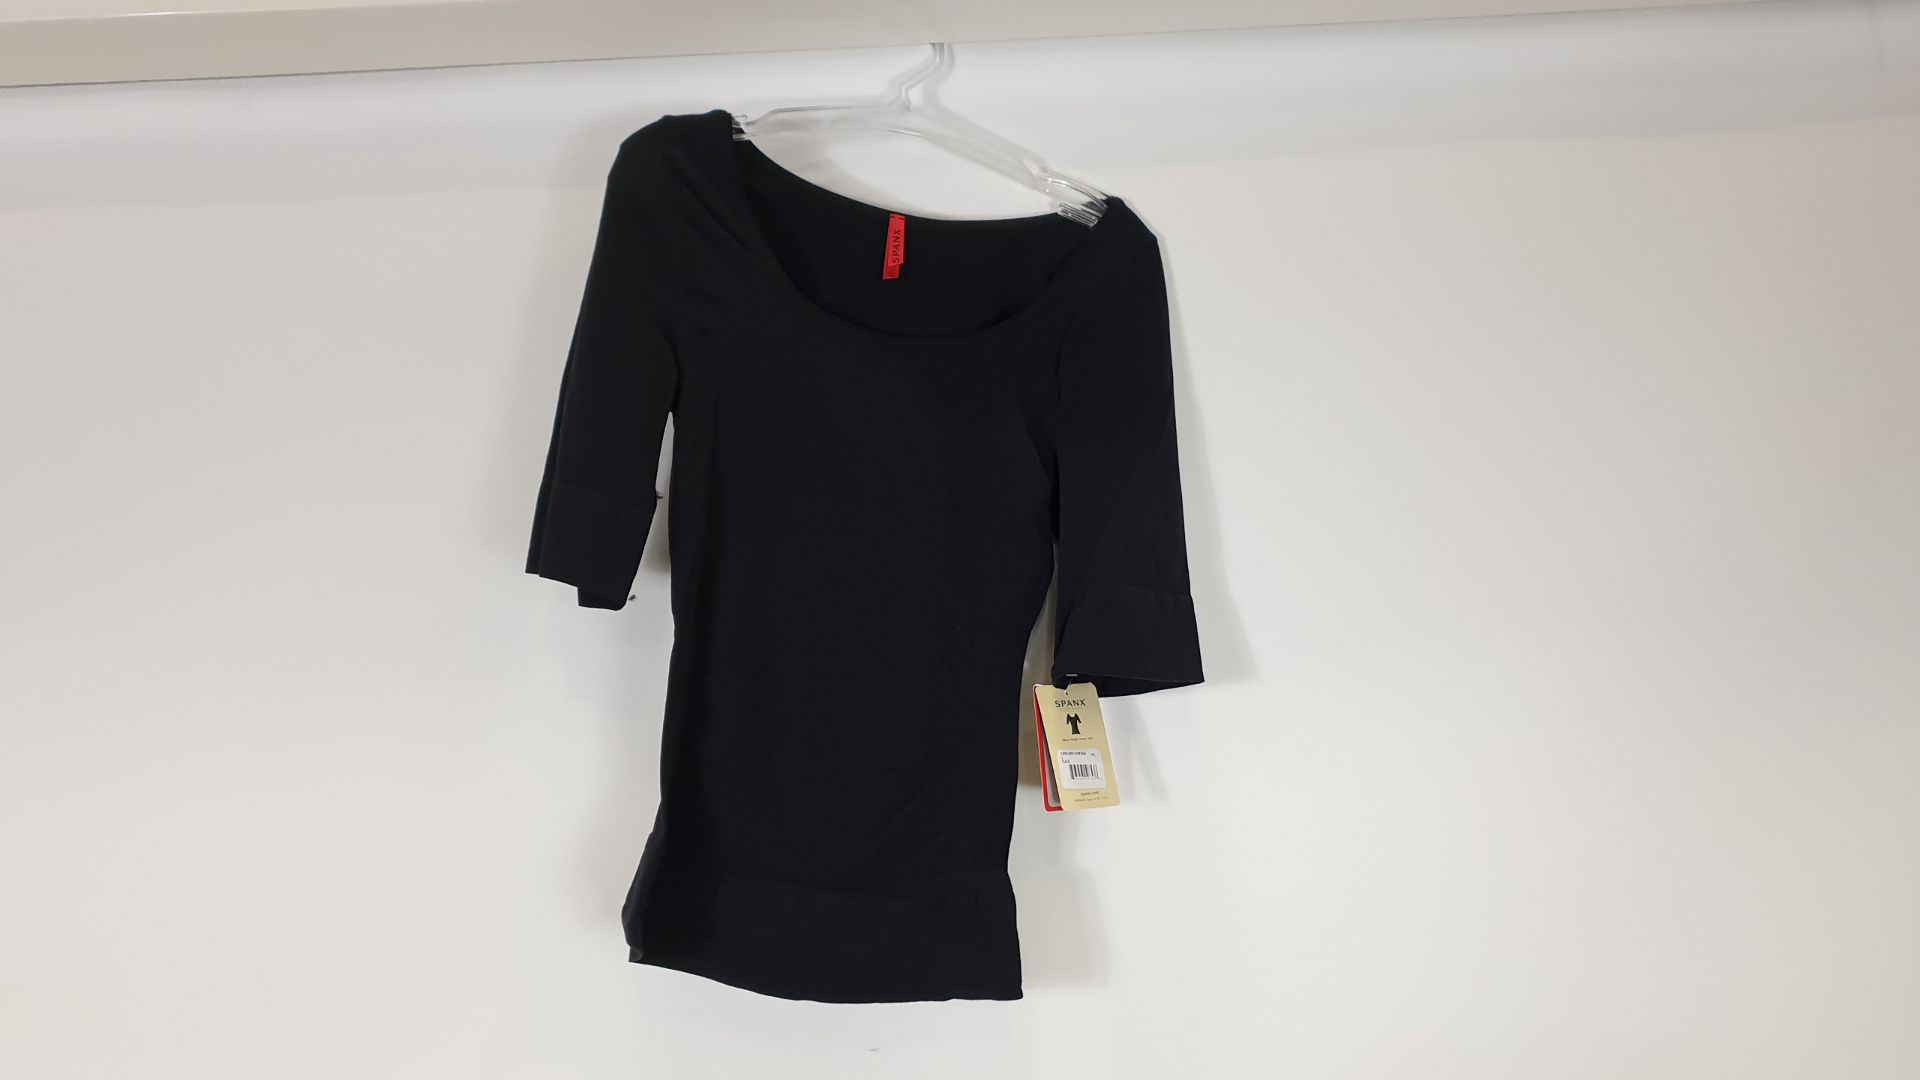 Lot 739 - 13 X BRAND NEW SPANX BLACK ELBOW LENGTH SCOOP NECK - IN SIZE L